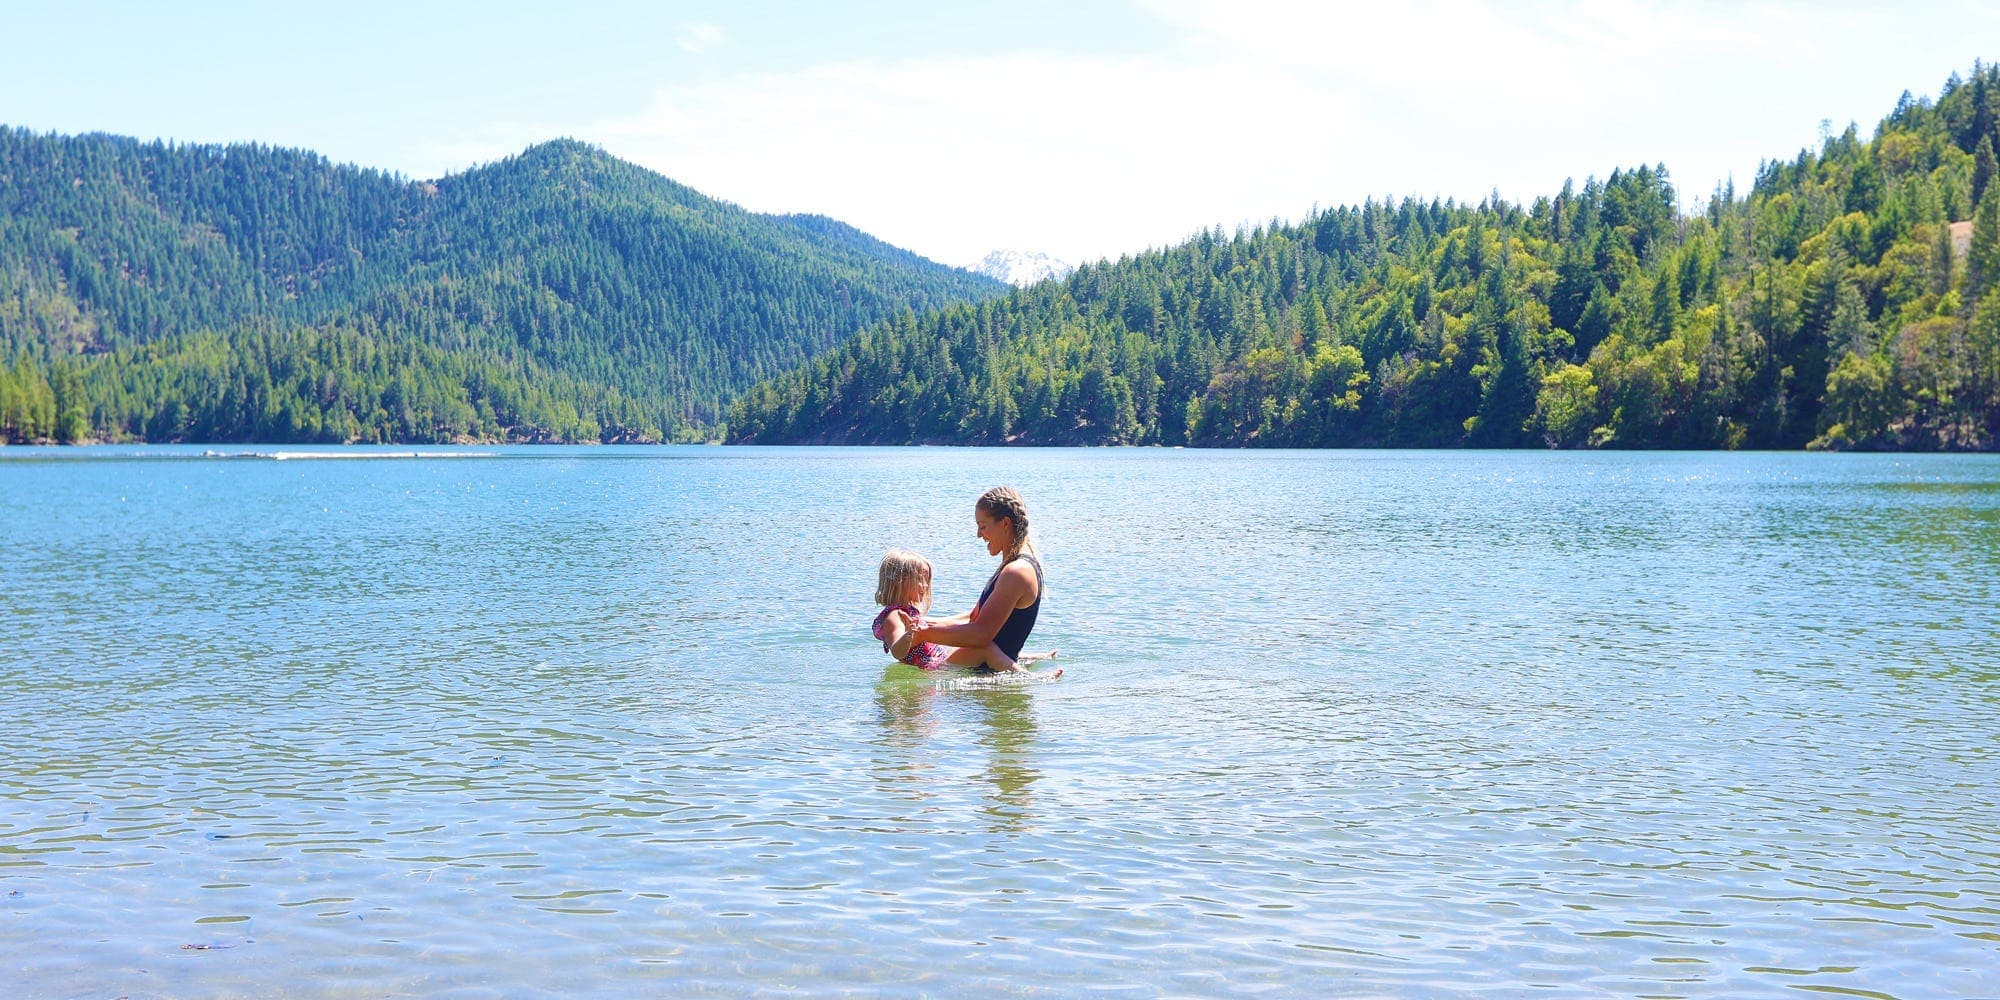 Mom and daughter in Applegate Lake